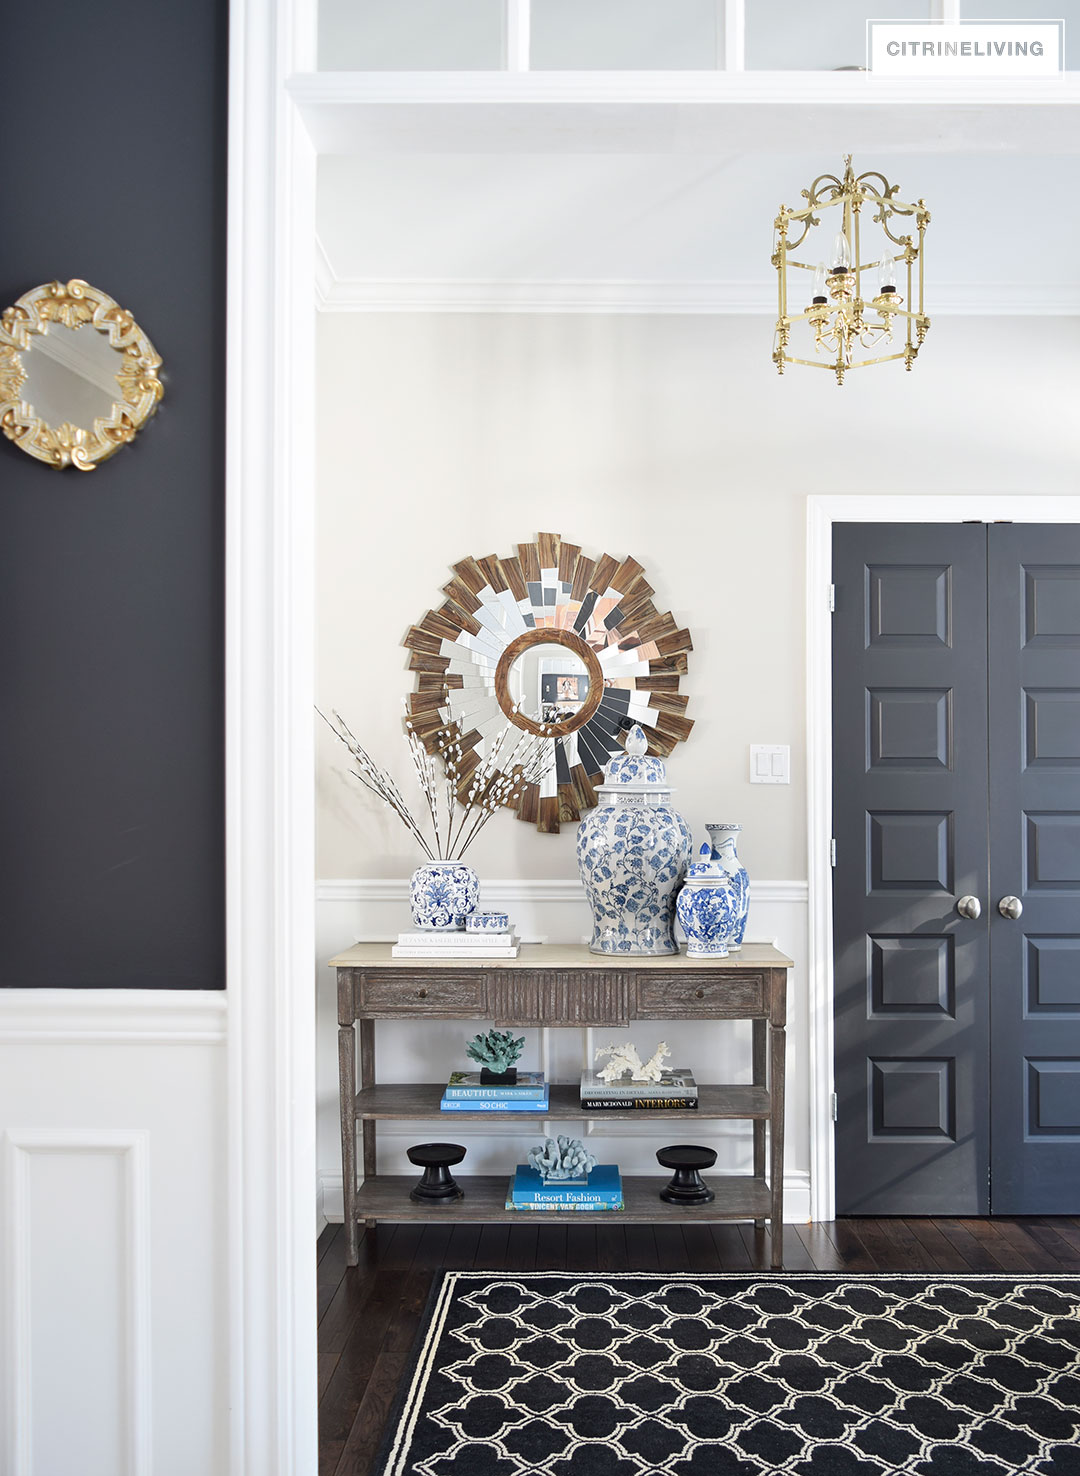 ONE TABLE FOR WAYS : Shop your own home to create unique and new styling displays | BLUE AND WHITE| GINGER JAR | WOOD CONSOLE TABLE | STARBURST MIRROR | ENTRYWAY | FOYER | BLACK WALLS | BLACK DOORS